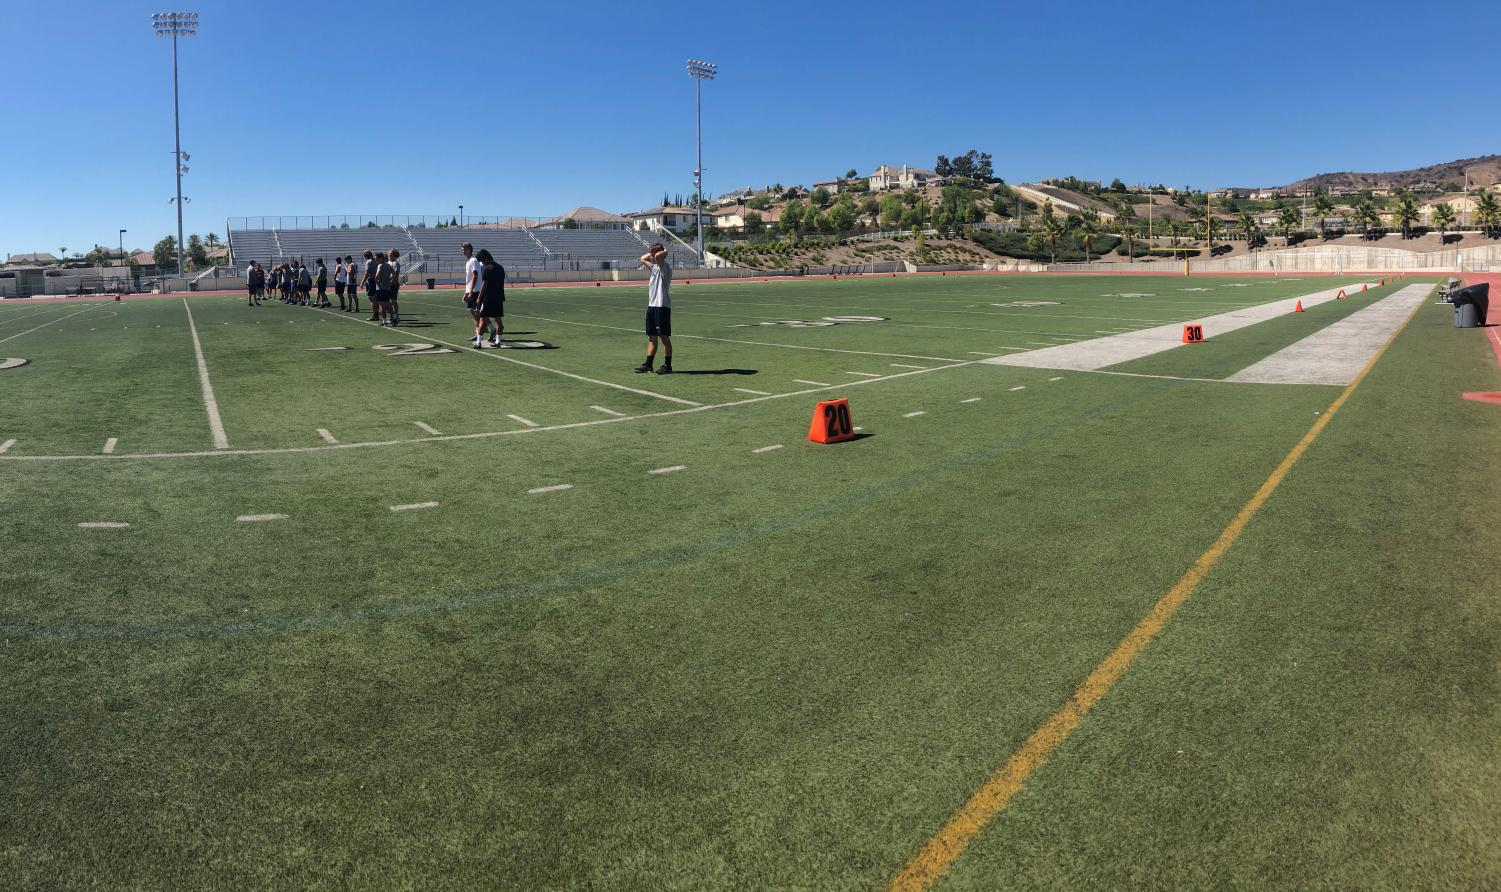 Yorba Linda High School's varsity football team practicing hard for upcoming game.